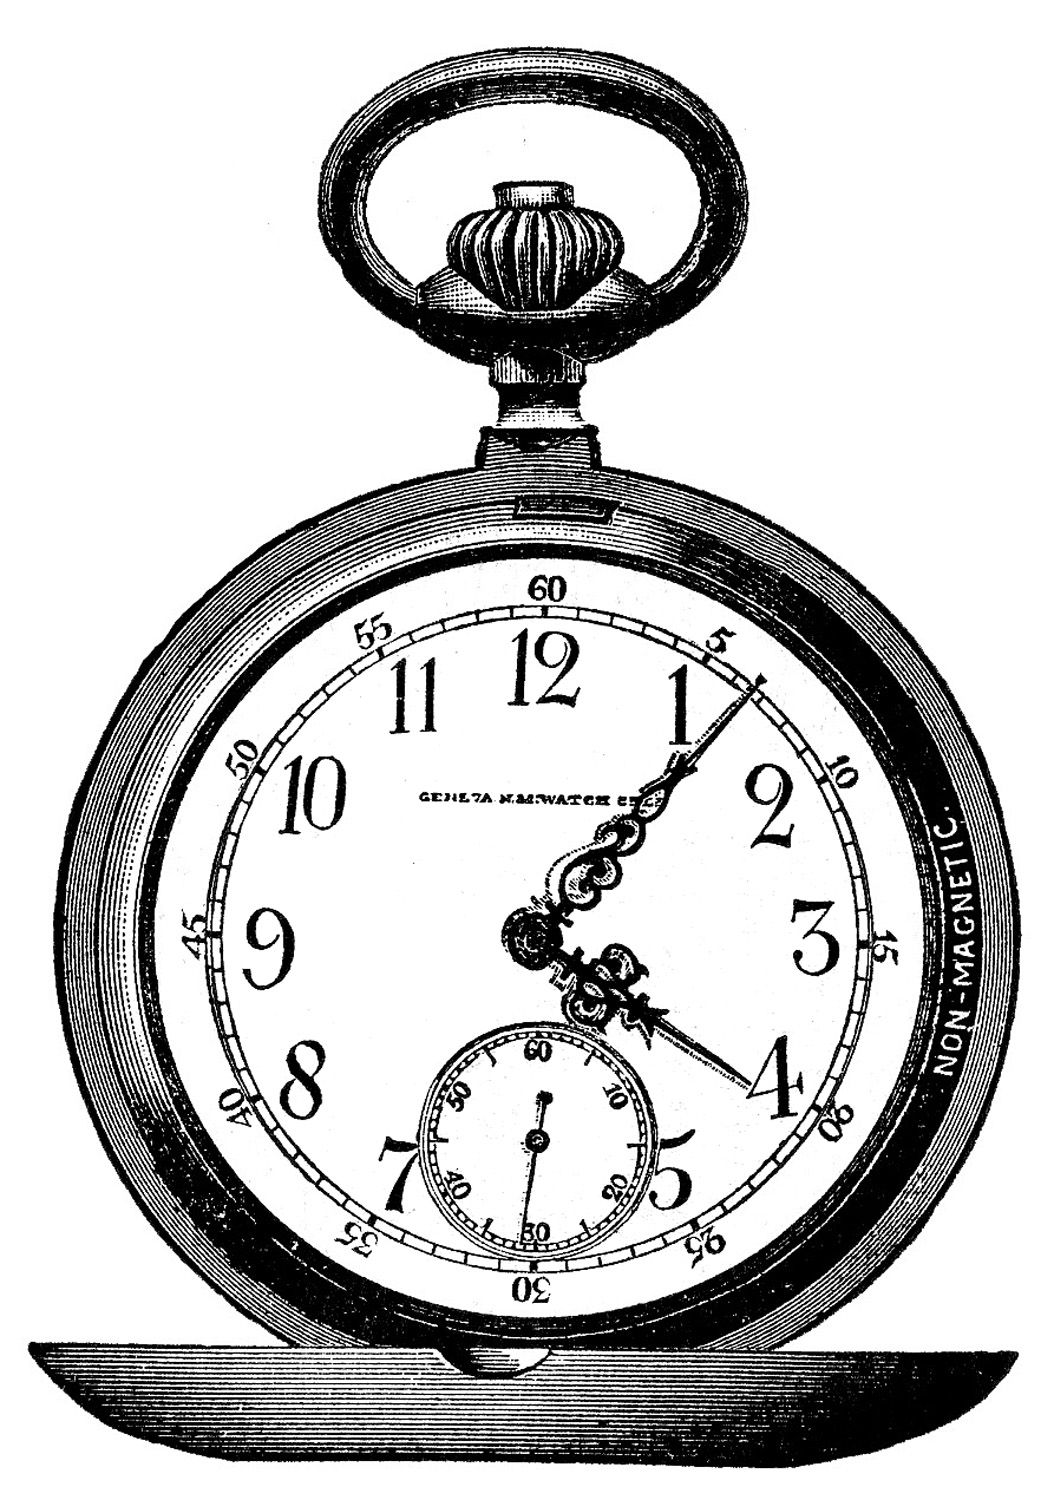 766b248c2f0 Vintage Clip Art - Marvelous Pocket Watch - Steampunk - The Graphics Fairy